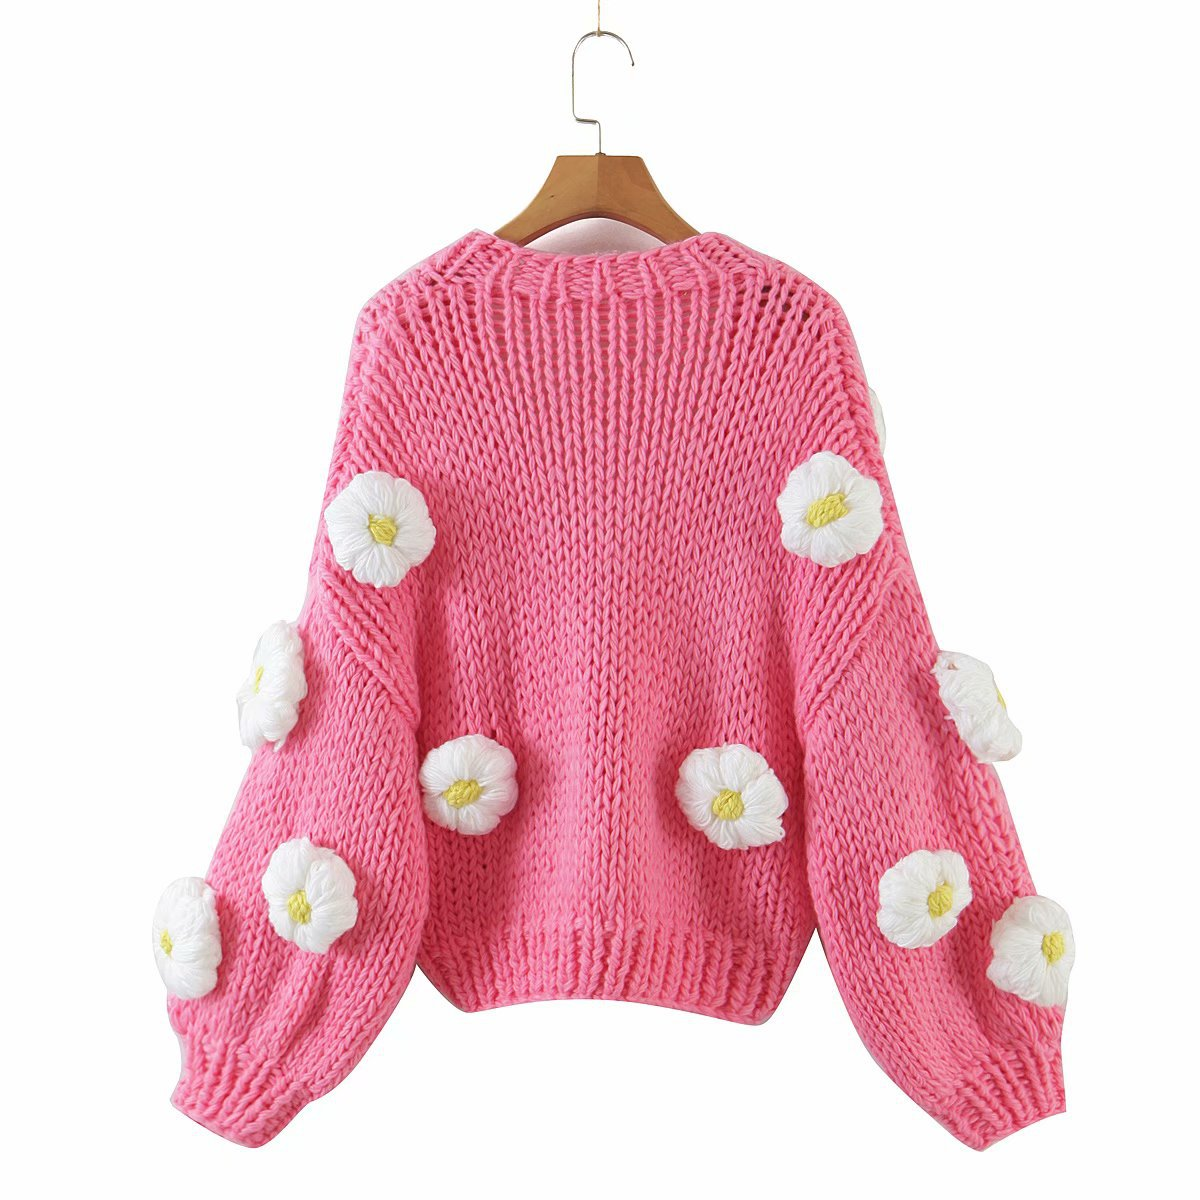 Three-dimensional Flowers Knitted Cardigan Women Sweater Winter Loose Fashion Long Sleeve Hollow Out Casual Kimono Cardigans enlarge